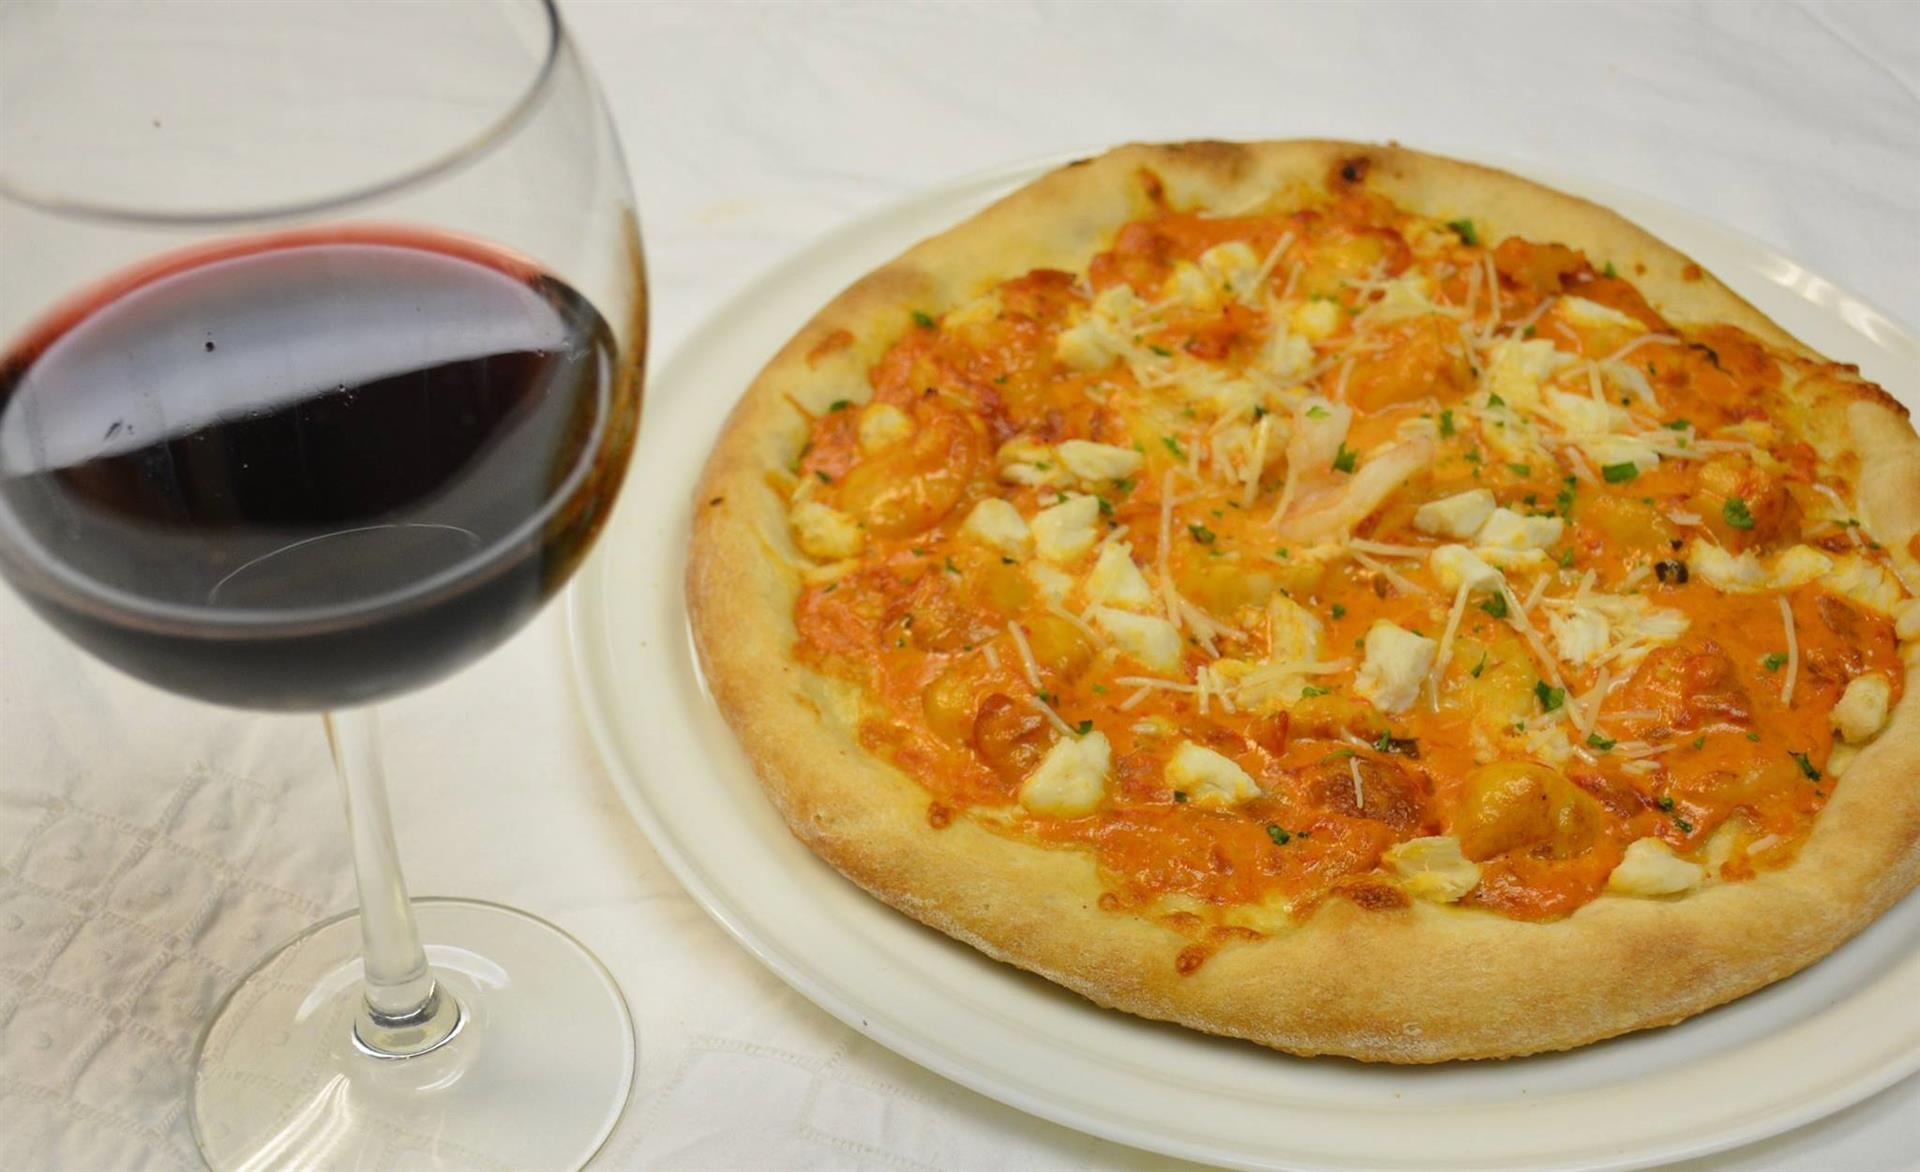 glass of red wine next to a plate with a shrimp scampi pizza